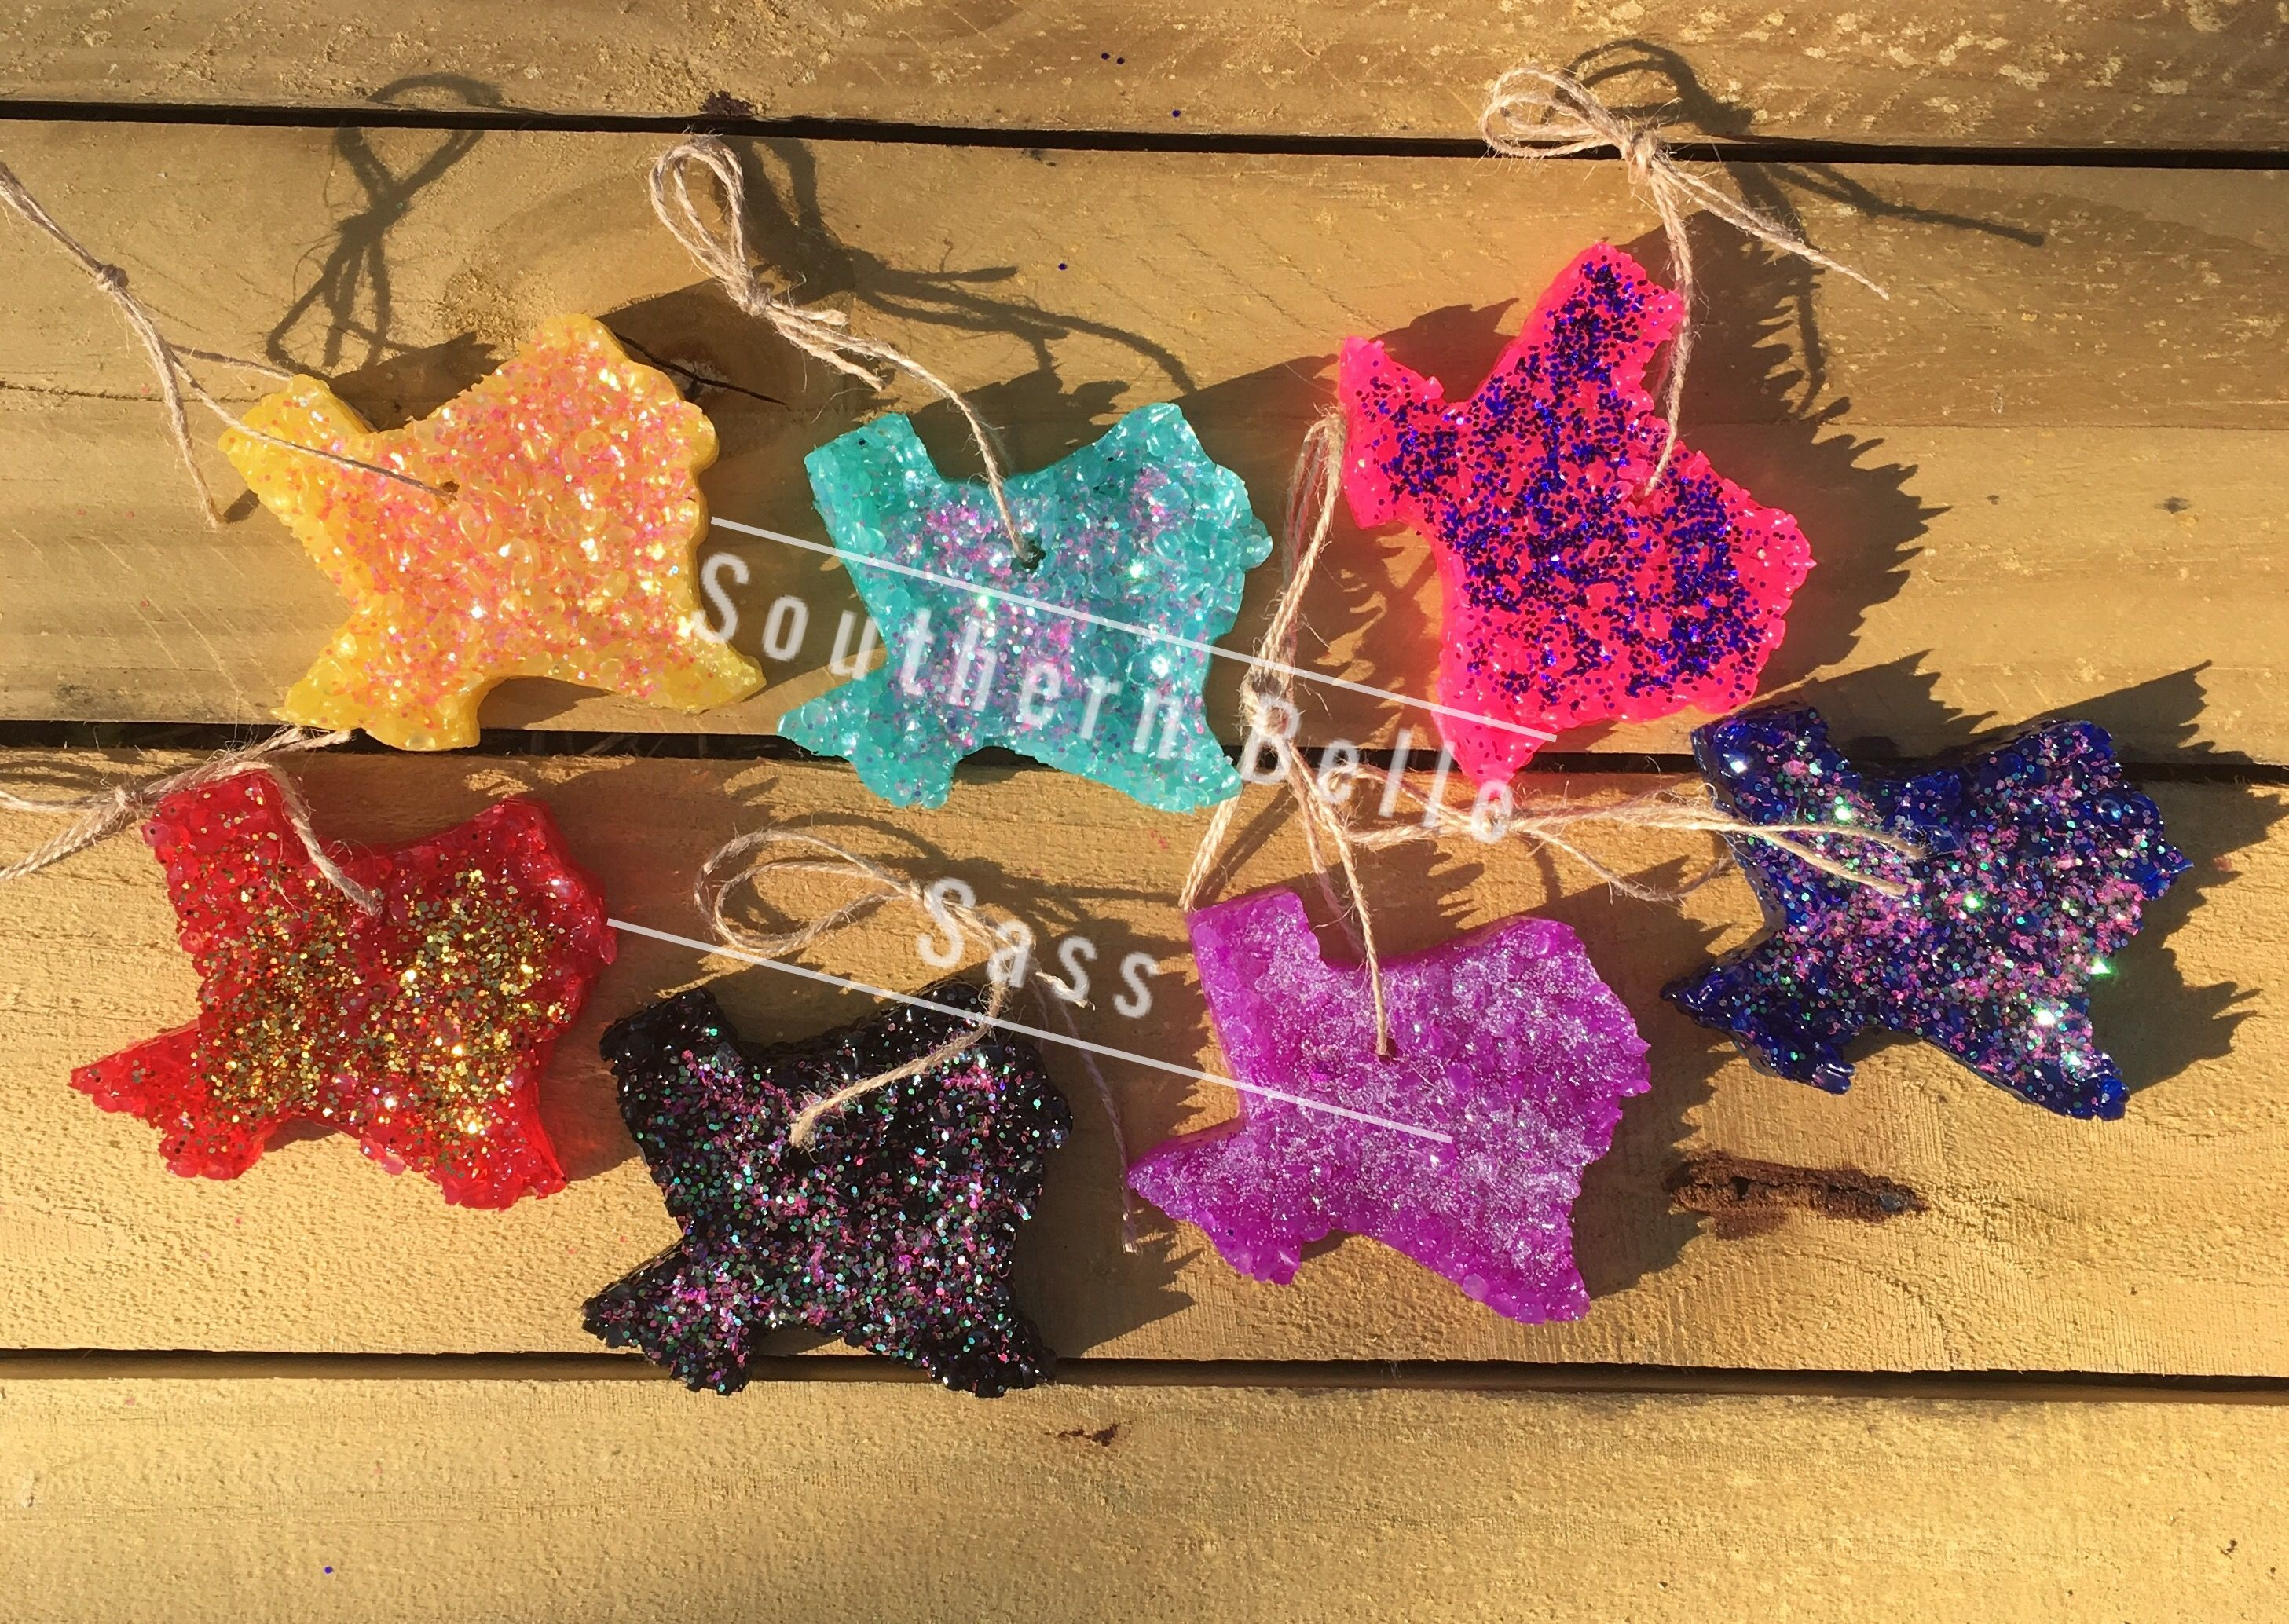 Pin by Nickey on freshair Aroma beads, Homemade scented